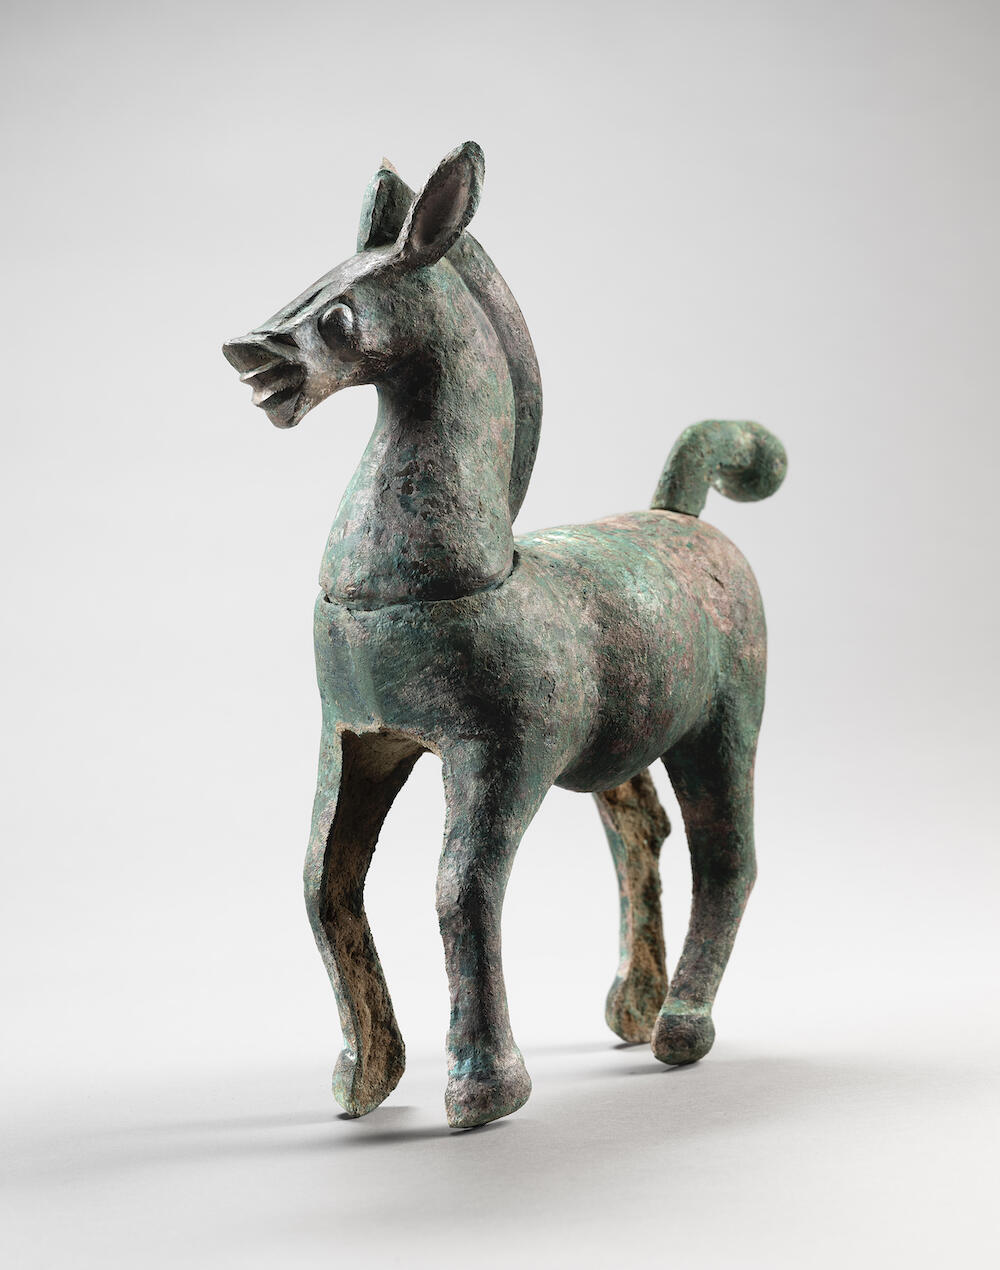 Bronze horse       China   Sichuan Province   Han dynasty (206 BC – AD 220)   Ht. 31,4 cm ((12 ¼. In.)   L. 27,7 cm. (10 7/8 in.)   Microanalysis, TL test       Credit line:   Photo Studio R. Asselberghs – Frédéric Dehaen